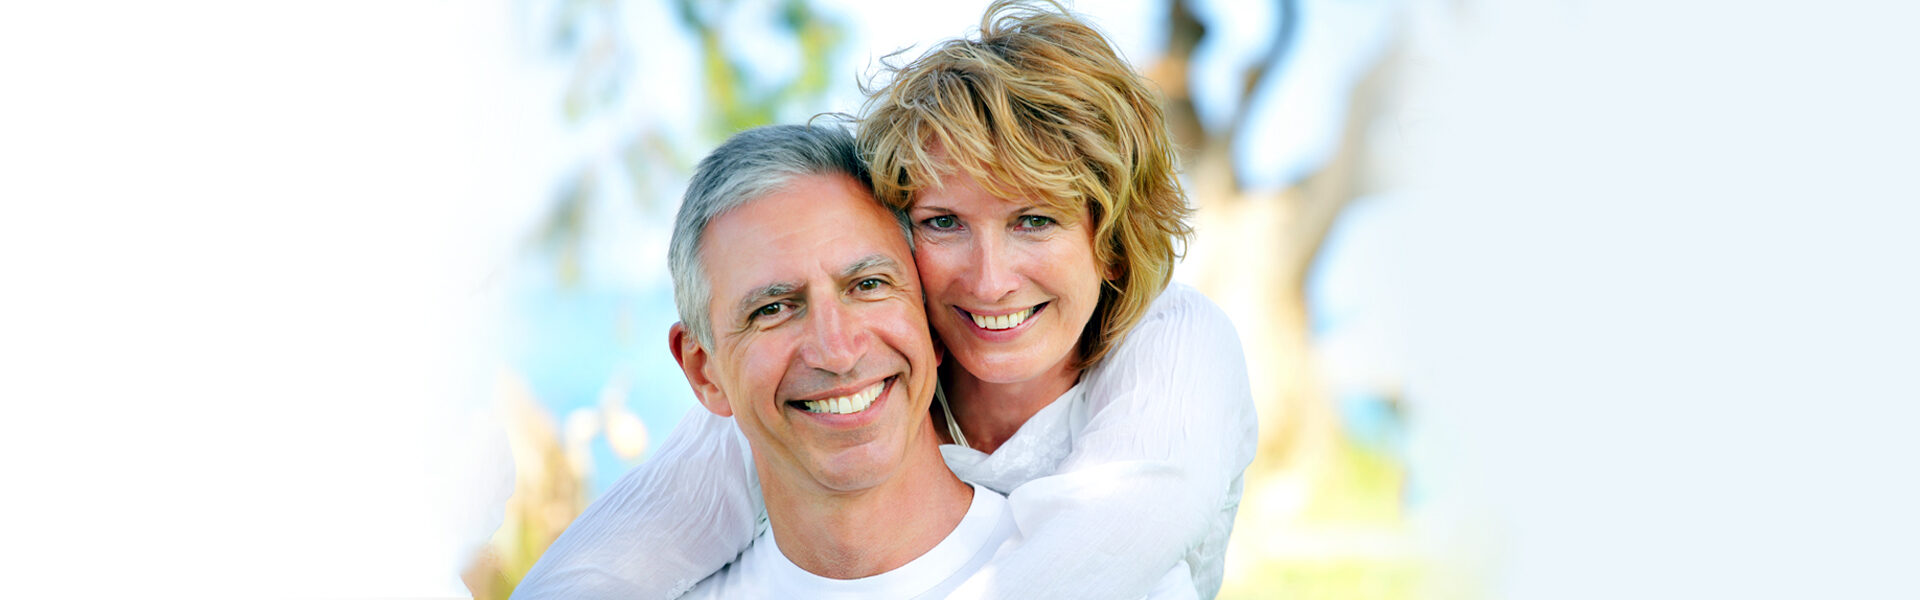 Dental Exams and Cleanings in Dublin, CA